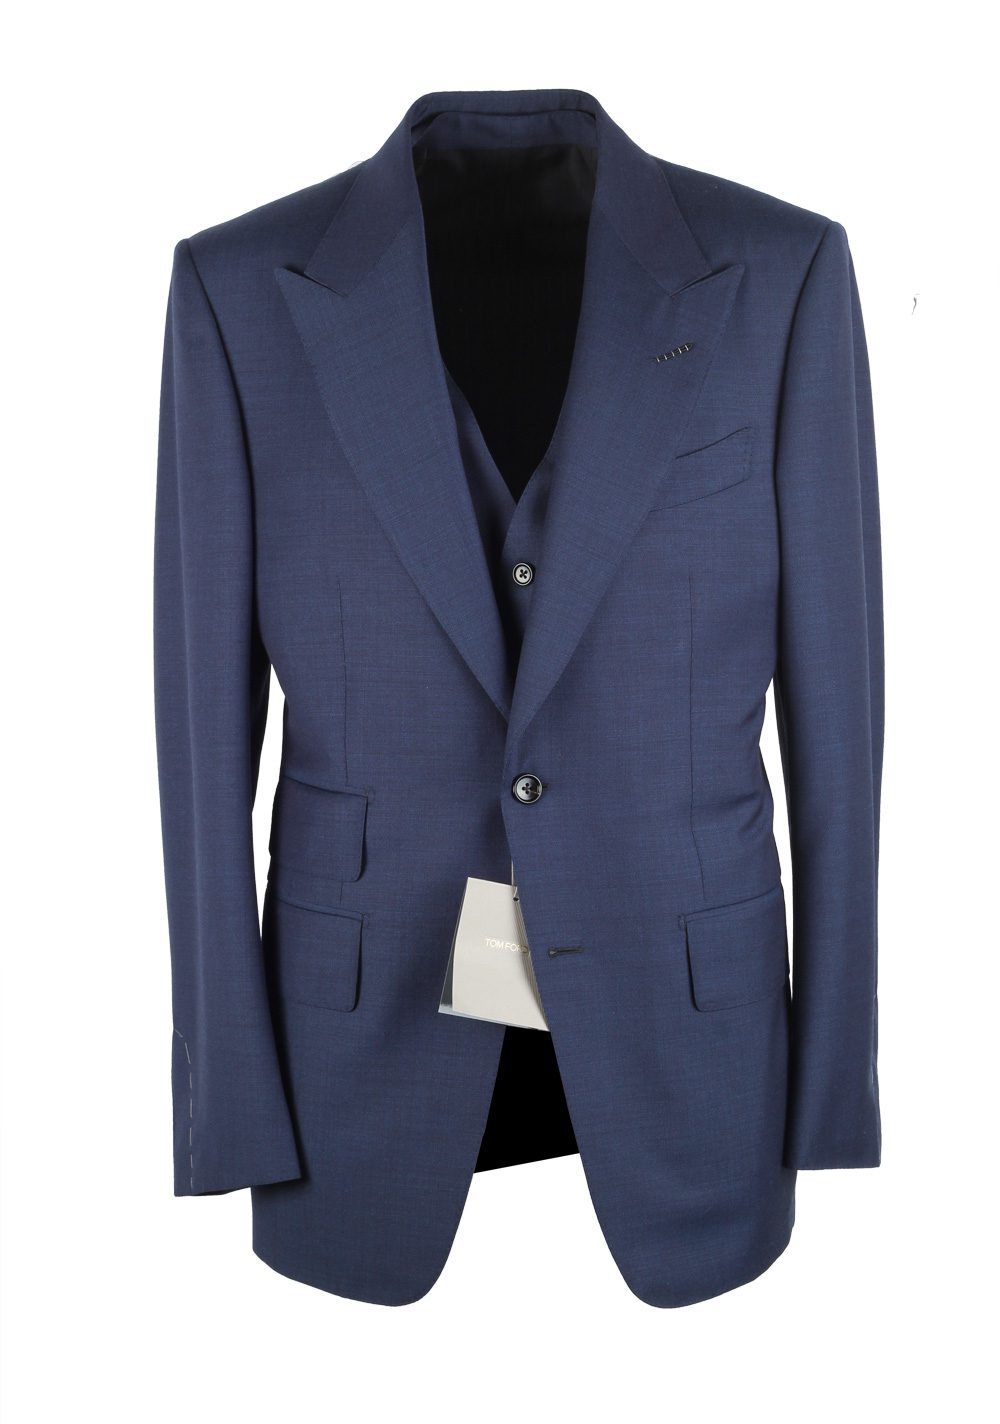 TOM FORD Windsor Blue 3 Piece Suit Size 50 / 40R U.S. Wool Fit A | Costume Limité